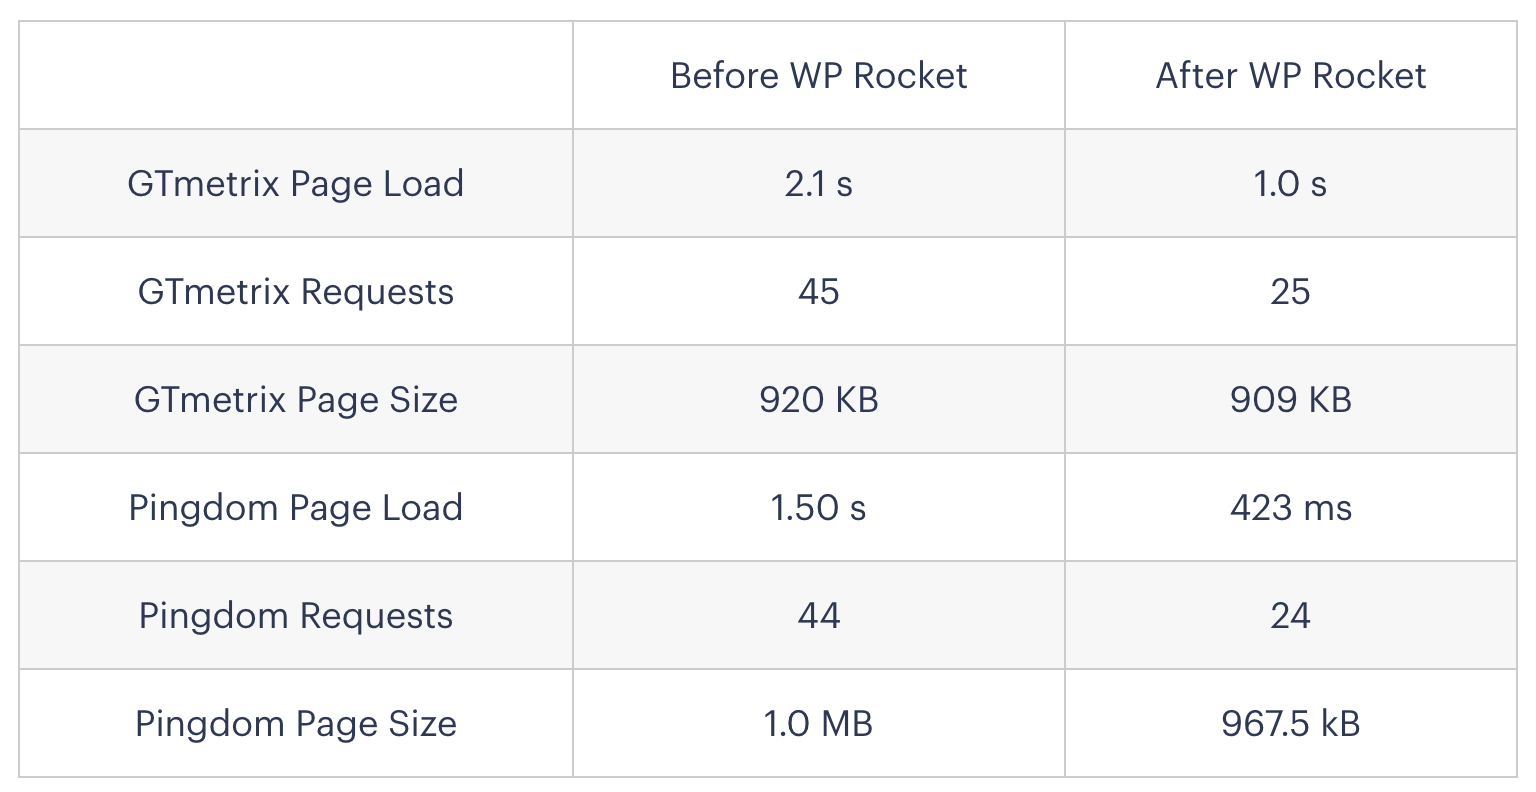 WP Rocket Before and After